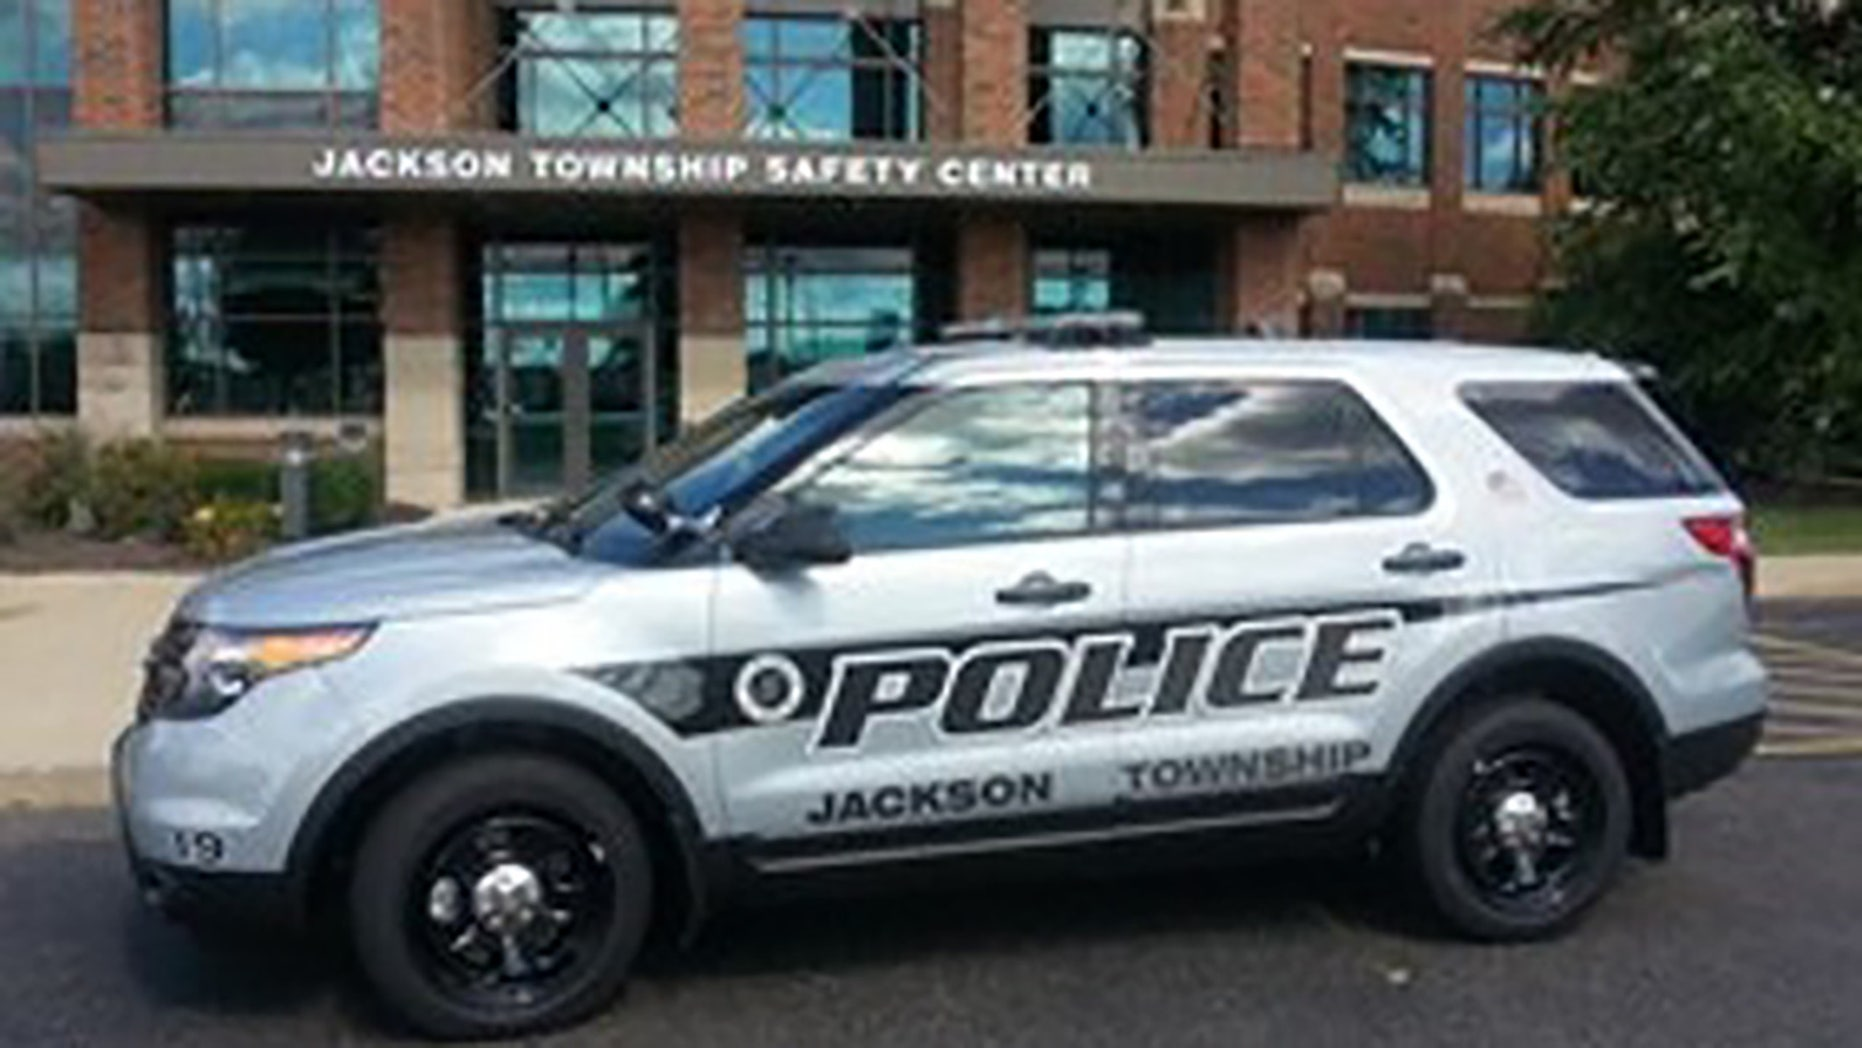 Jackson Township, Ohio police launched an investigation into the deaths of two teens found in a wooded area.